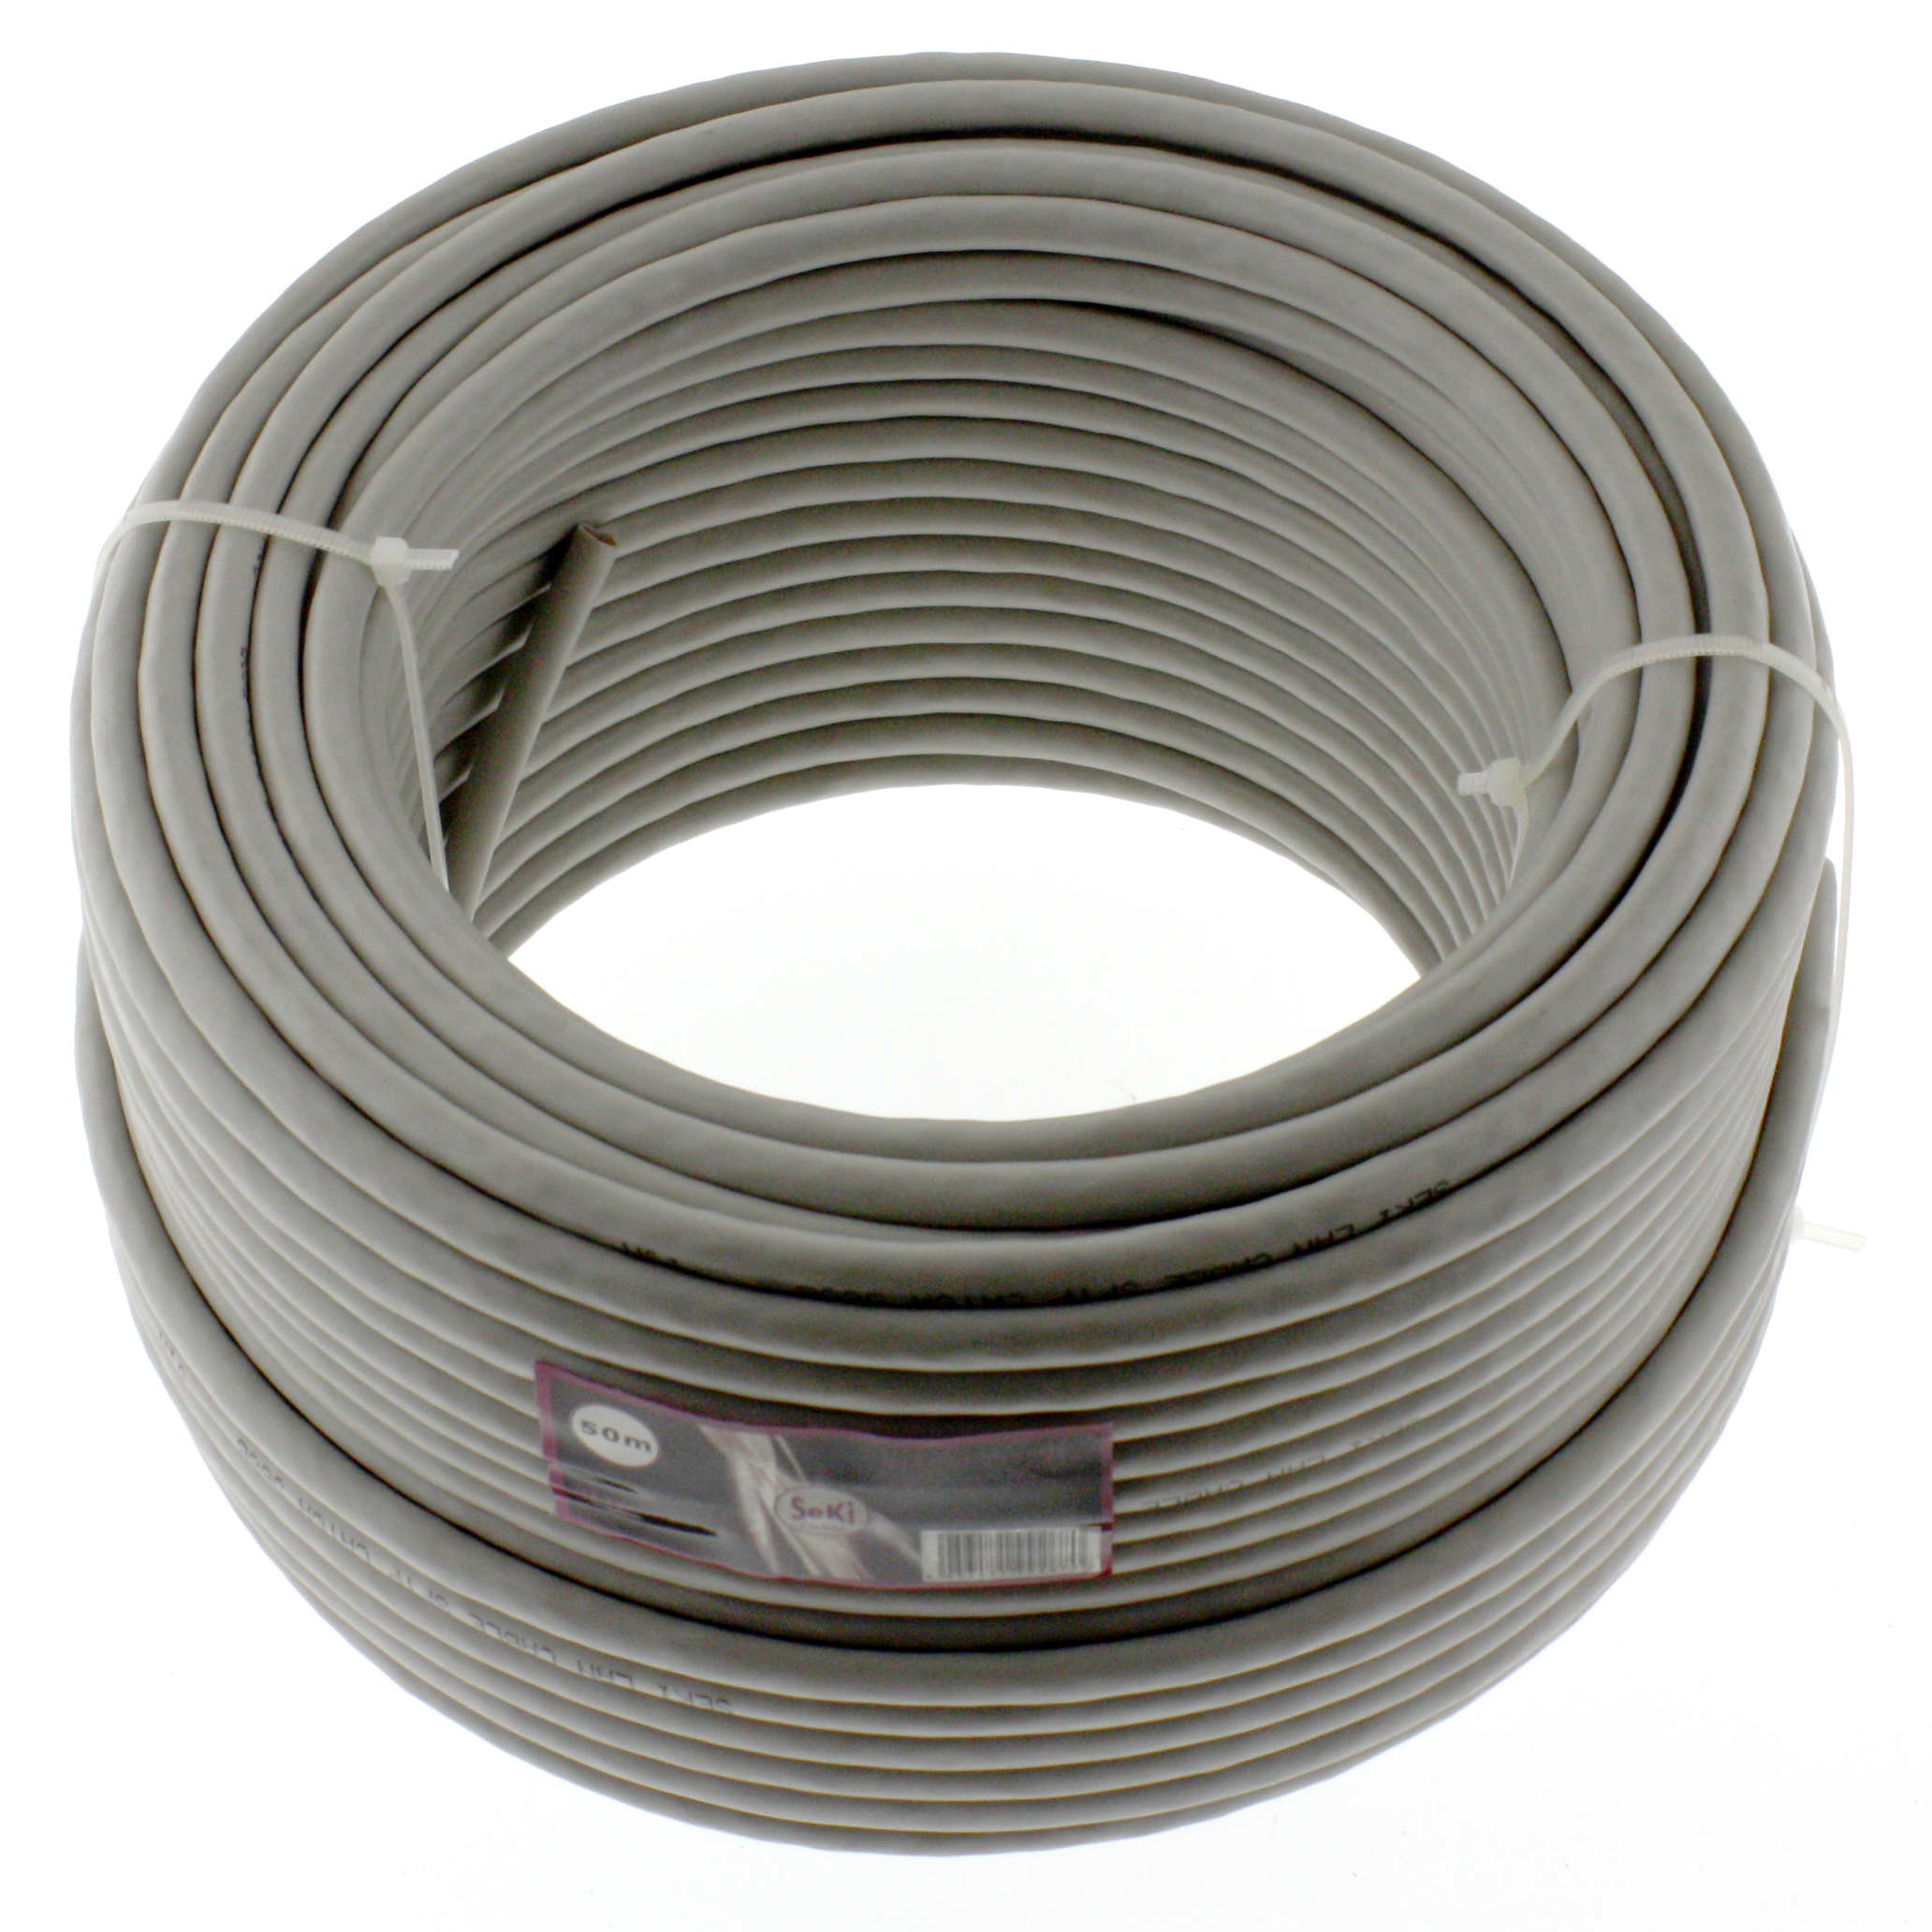 Network cable for installation Cat. 6, 50m